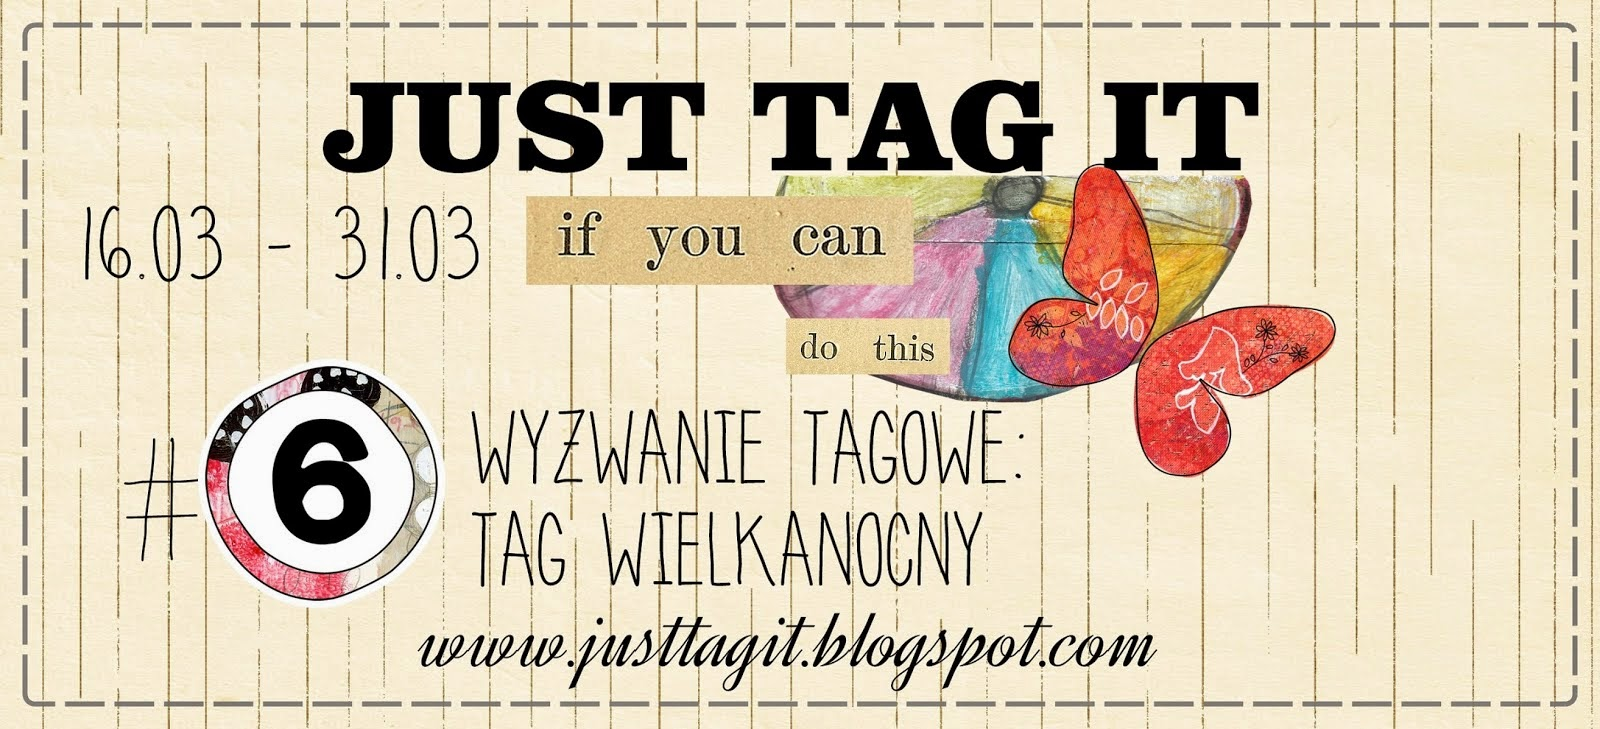 http://justtagit.blogspot.com/search/label/Wyzwanie